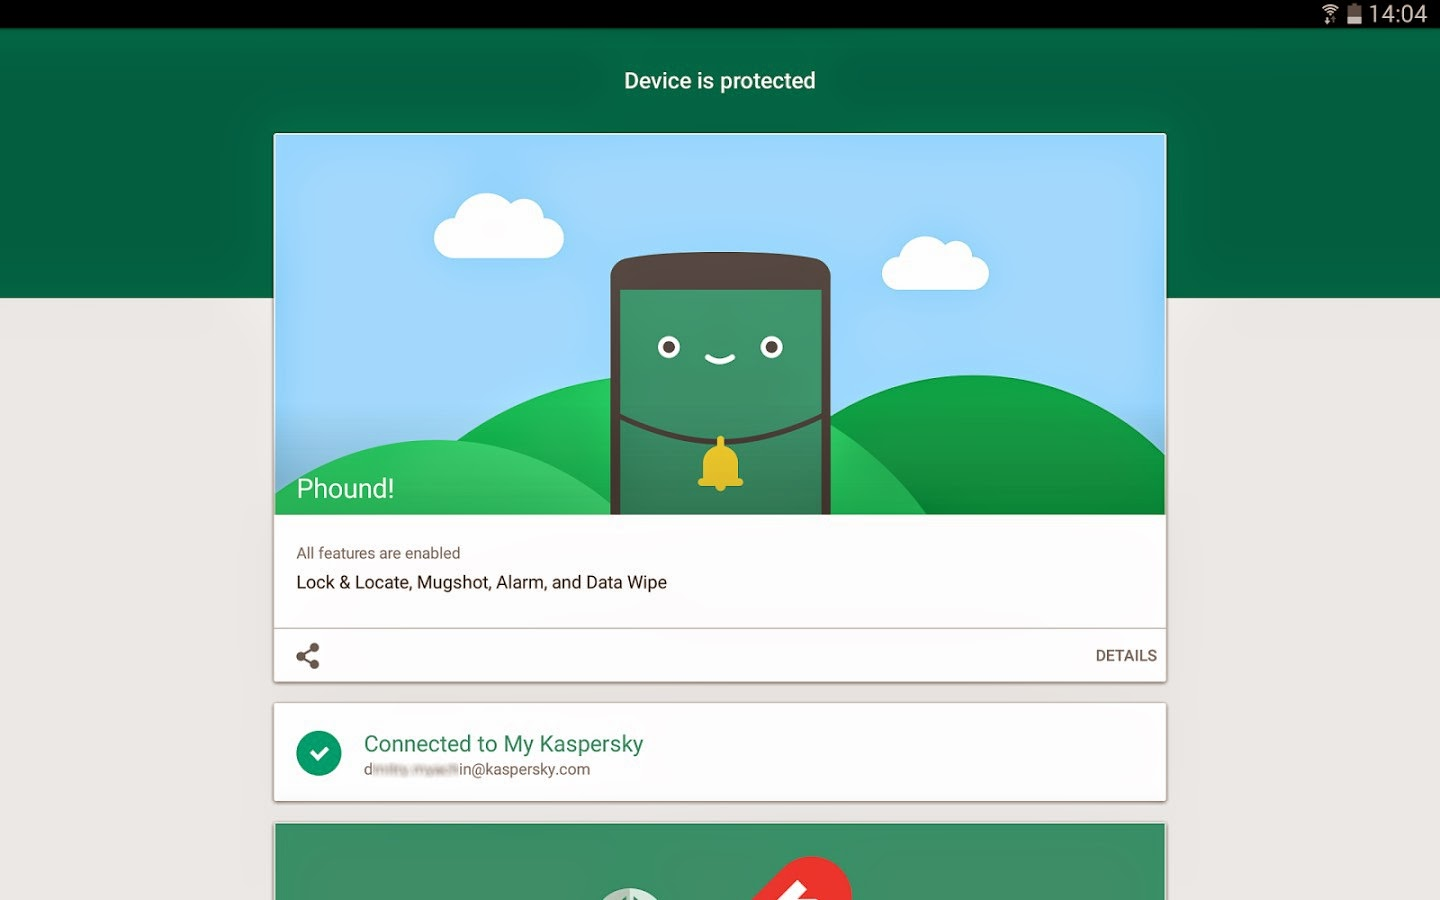 Kaspersky releases Phound! anti-theft app for Android phones and tablets